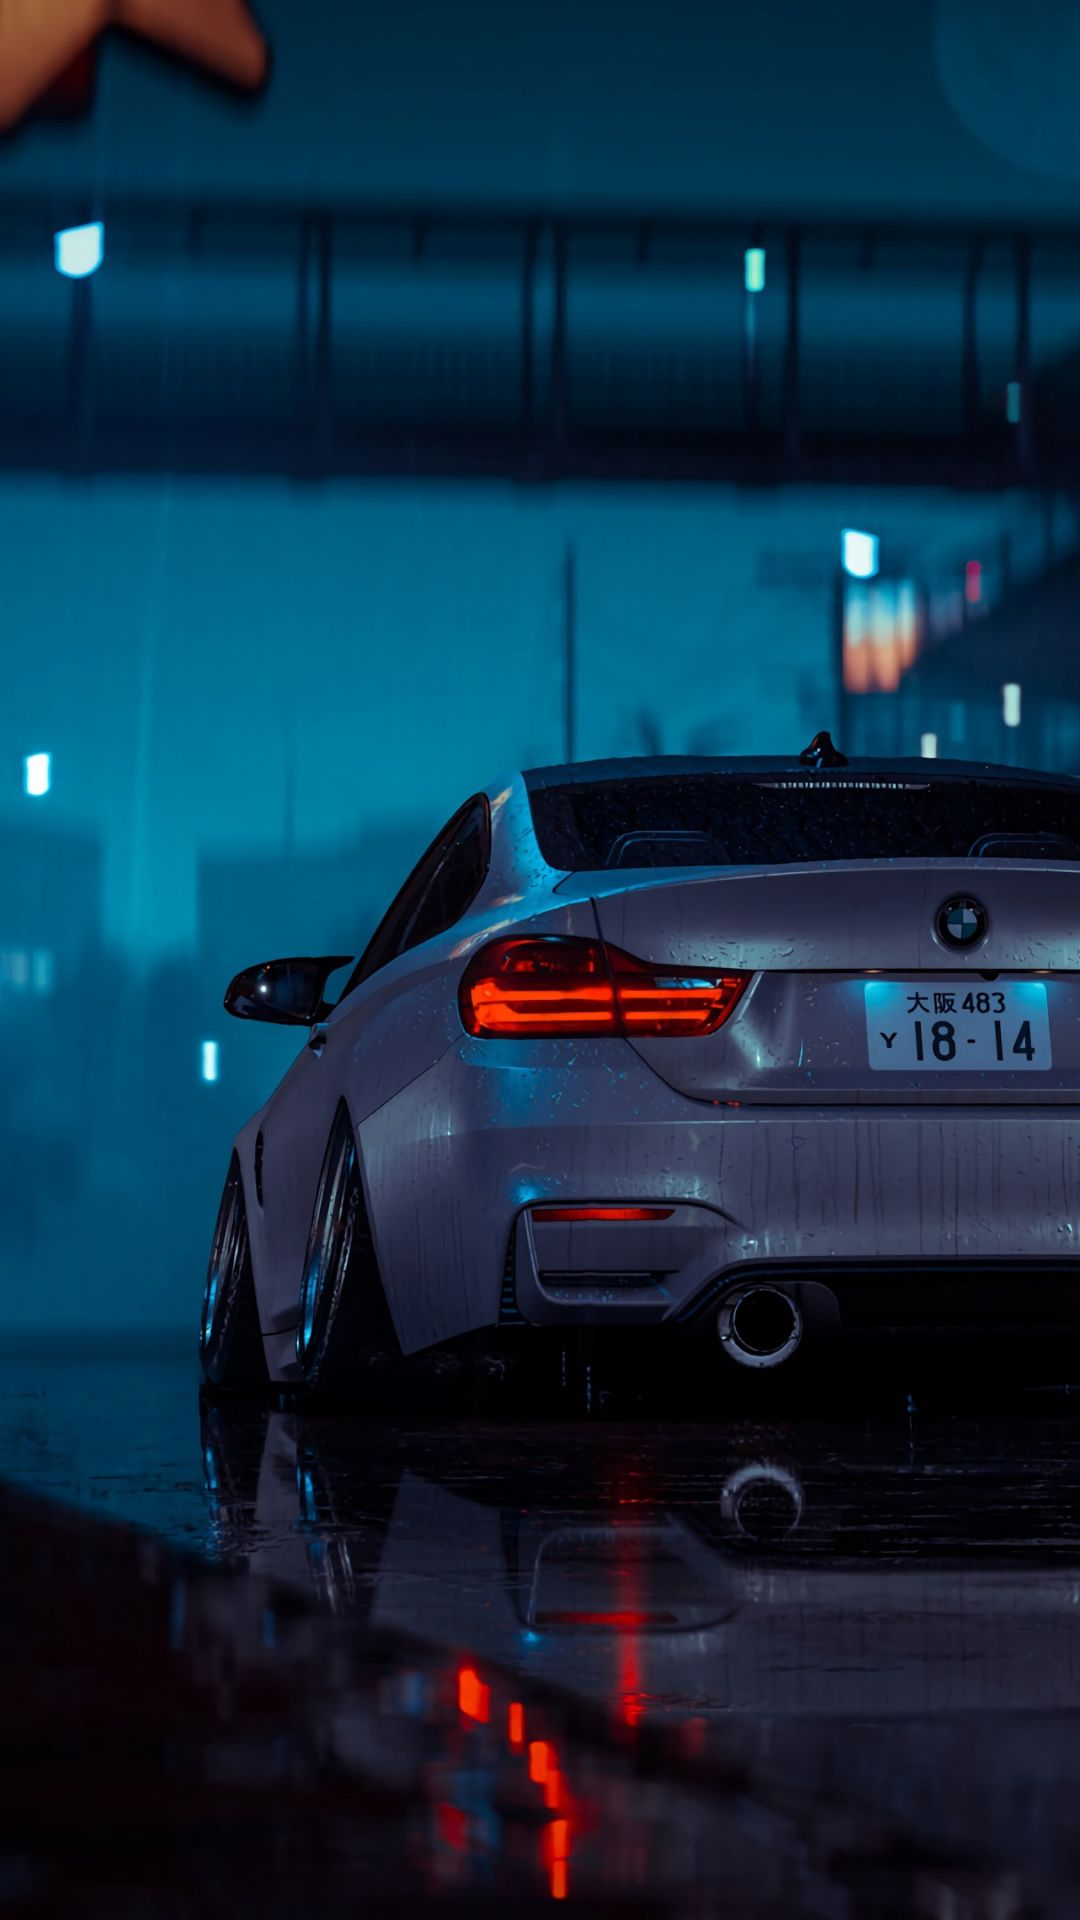 1080x1920 Artwork Car Rear View Gray Wet Wallpaper Street Racing Cars Bmw Wallpapers Car Wallpapers